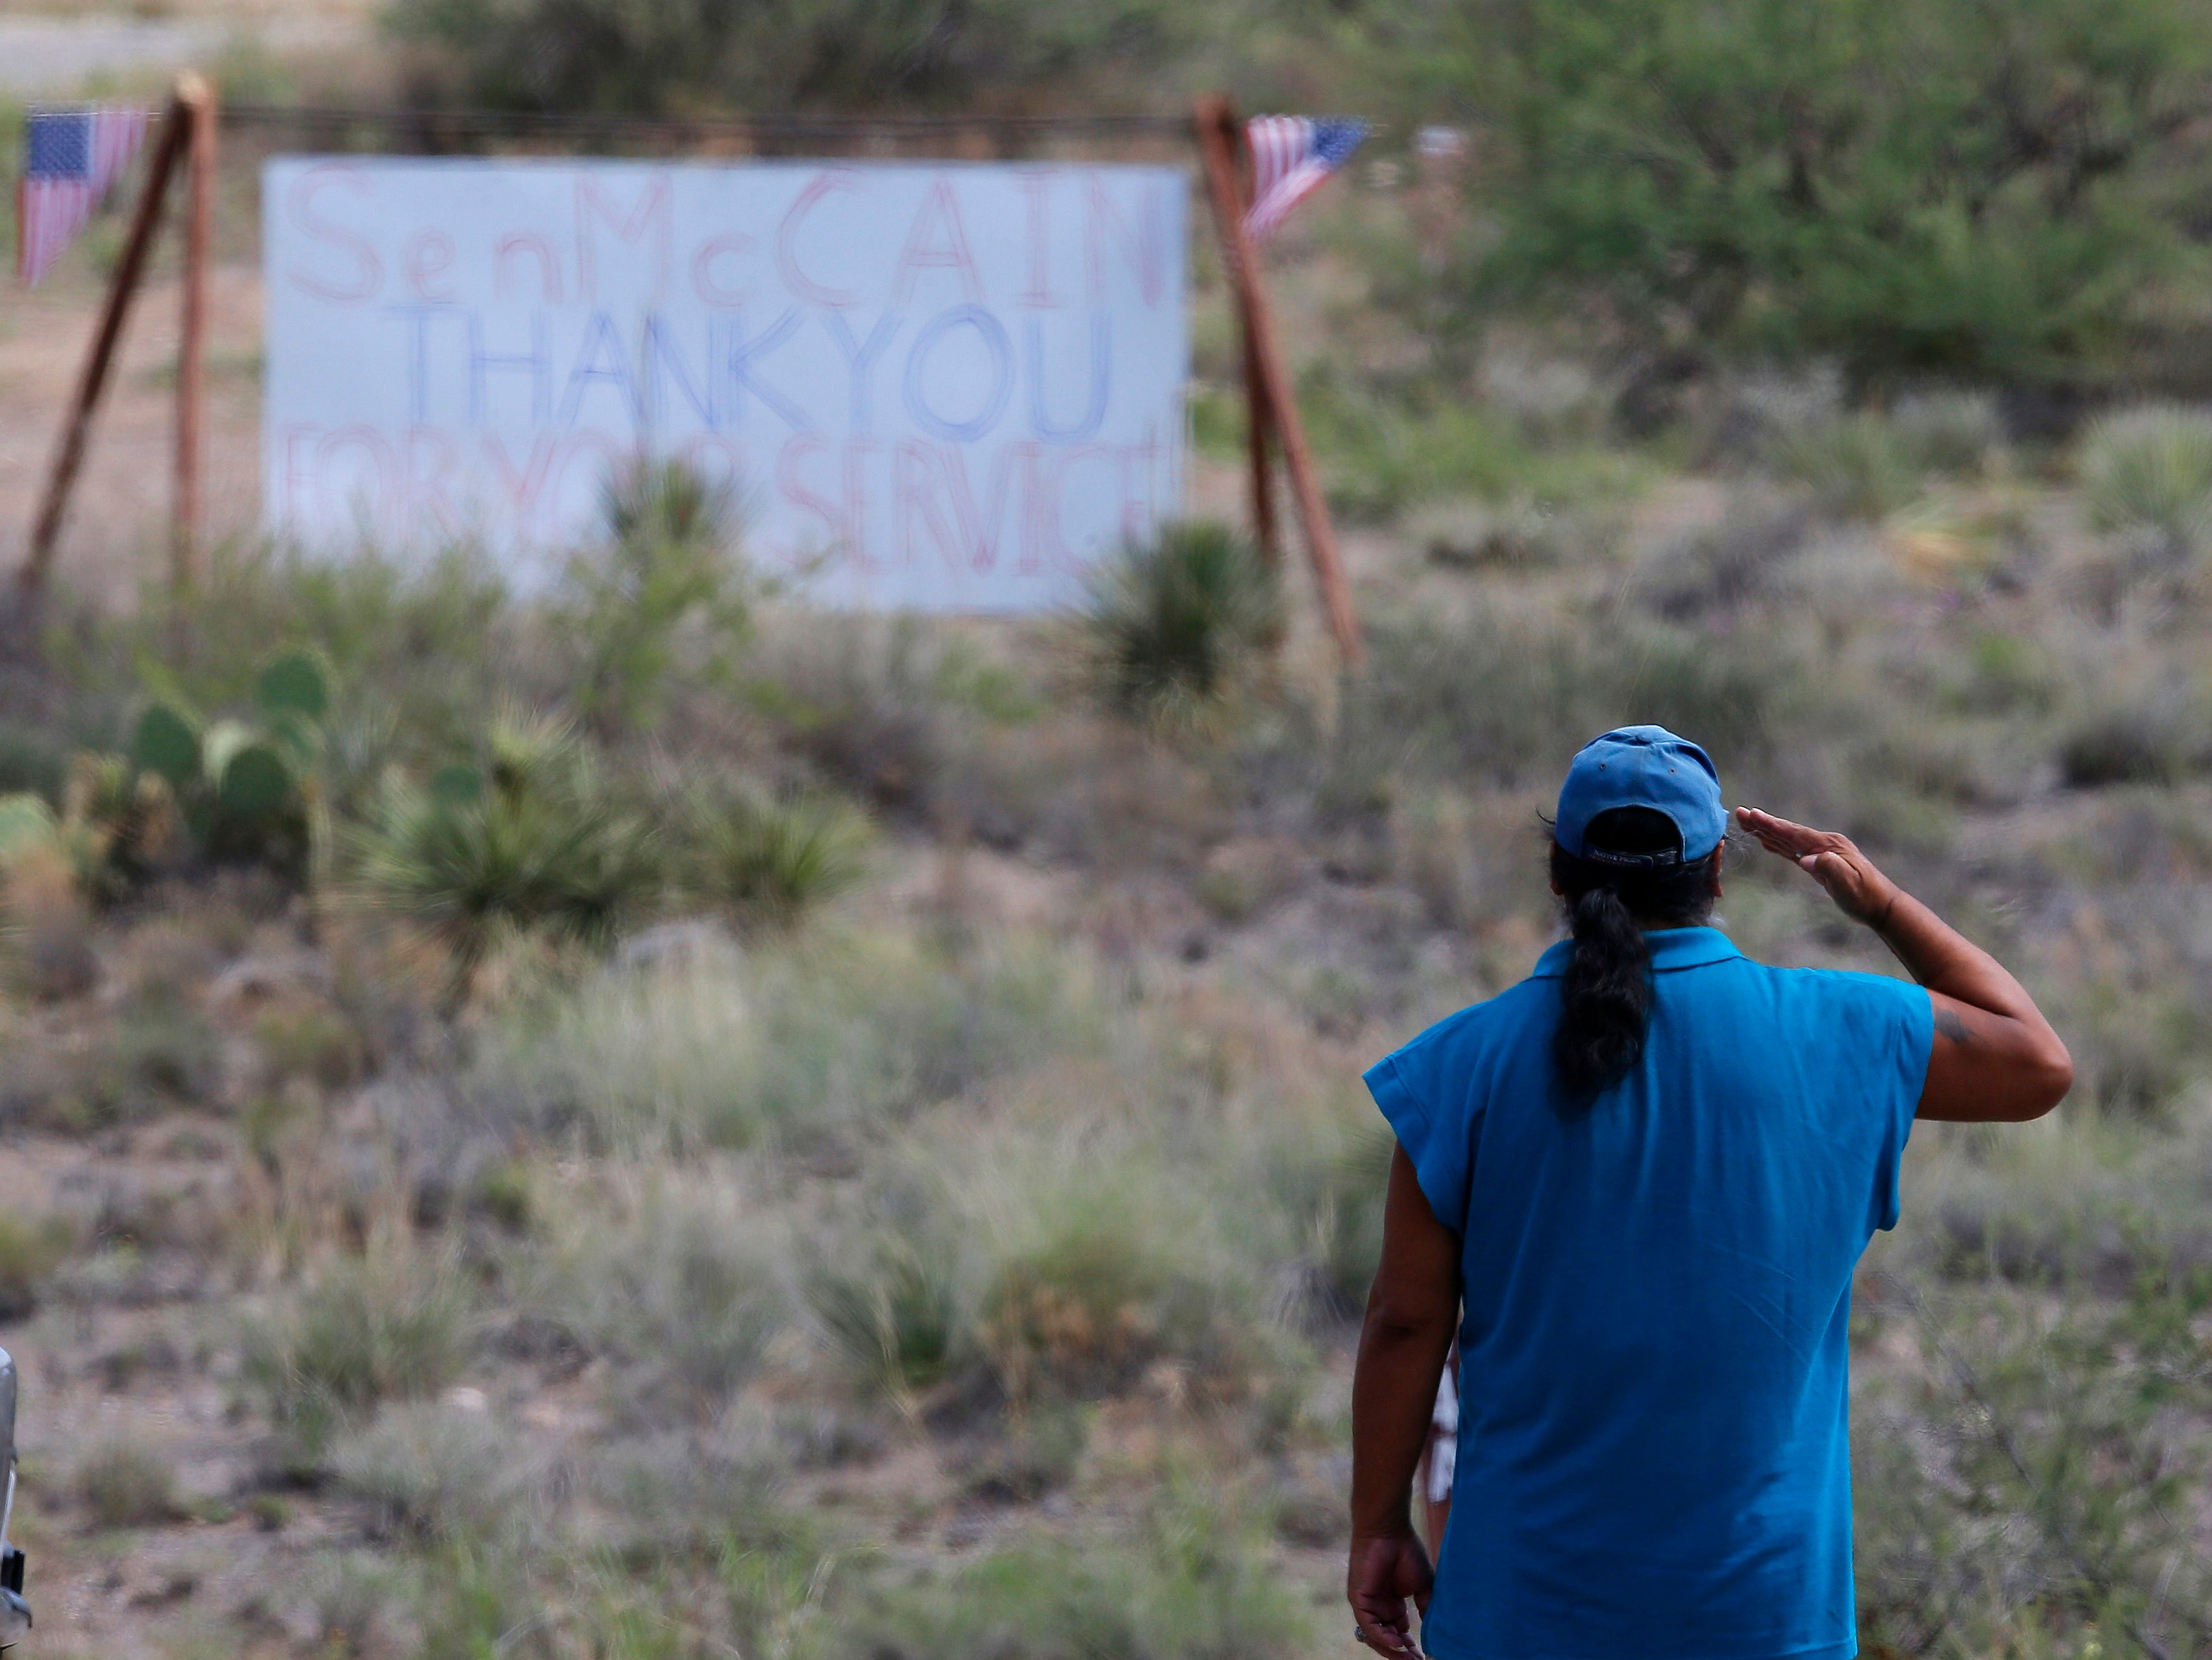 A military veteran pays his respects, as John McCain has discontinued medical treatment for an aggressive form of brain cancer, at the entrance to the McCain ranch complex in Cornville, Ariz., Saturday, Aug. 25, 2018.